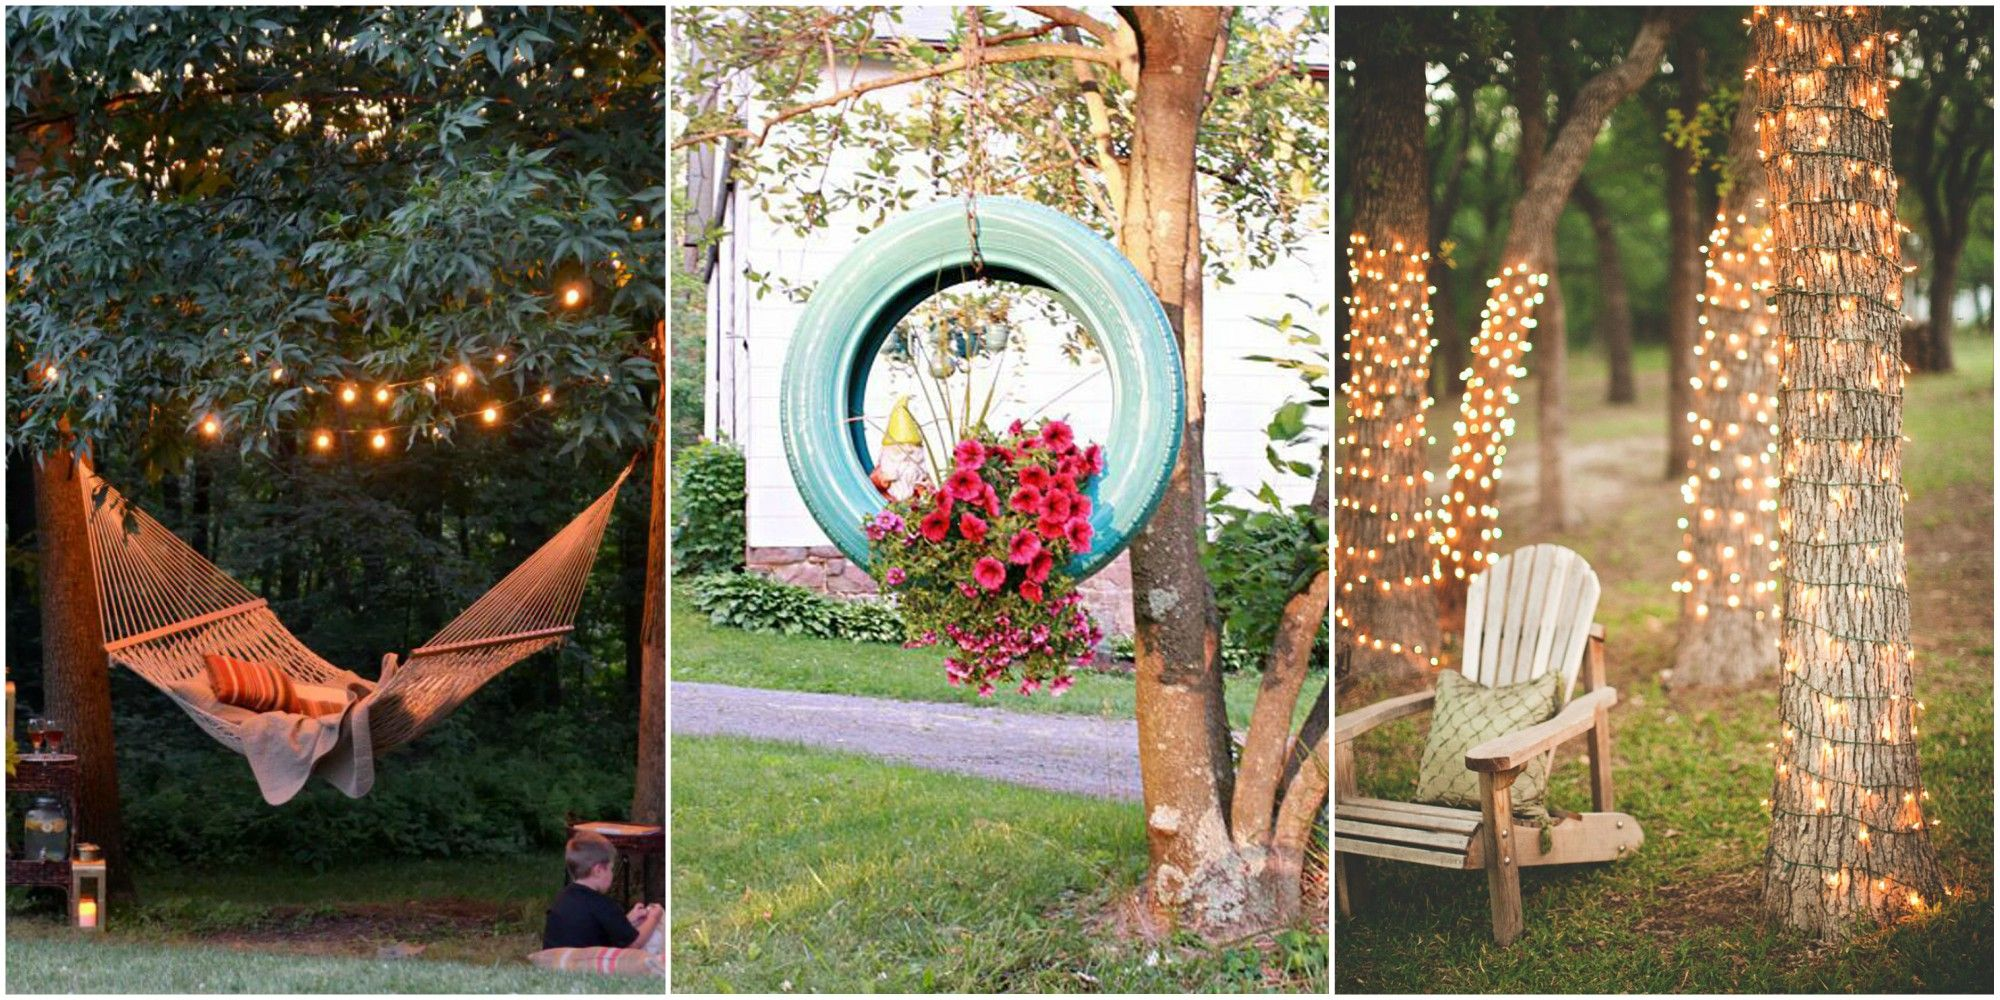 Captivating Backyard Decorating Ideas